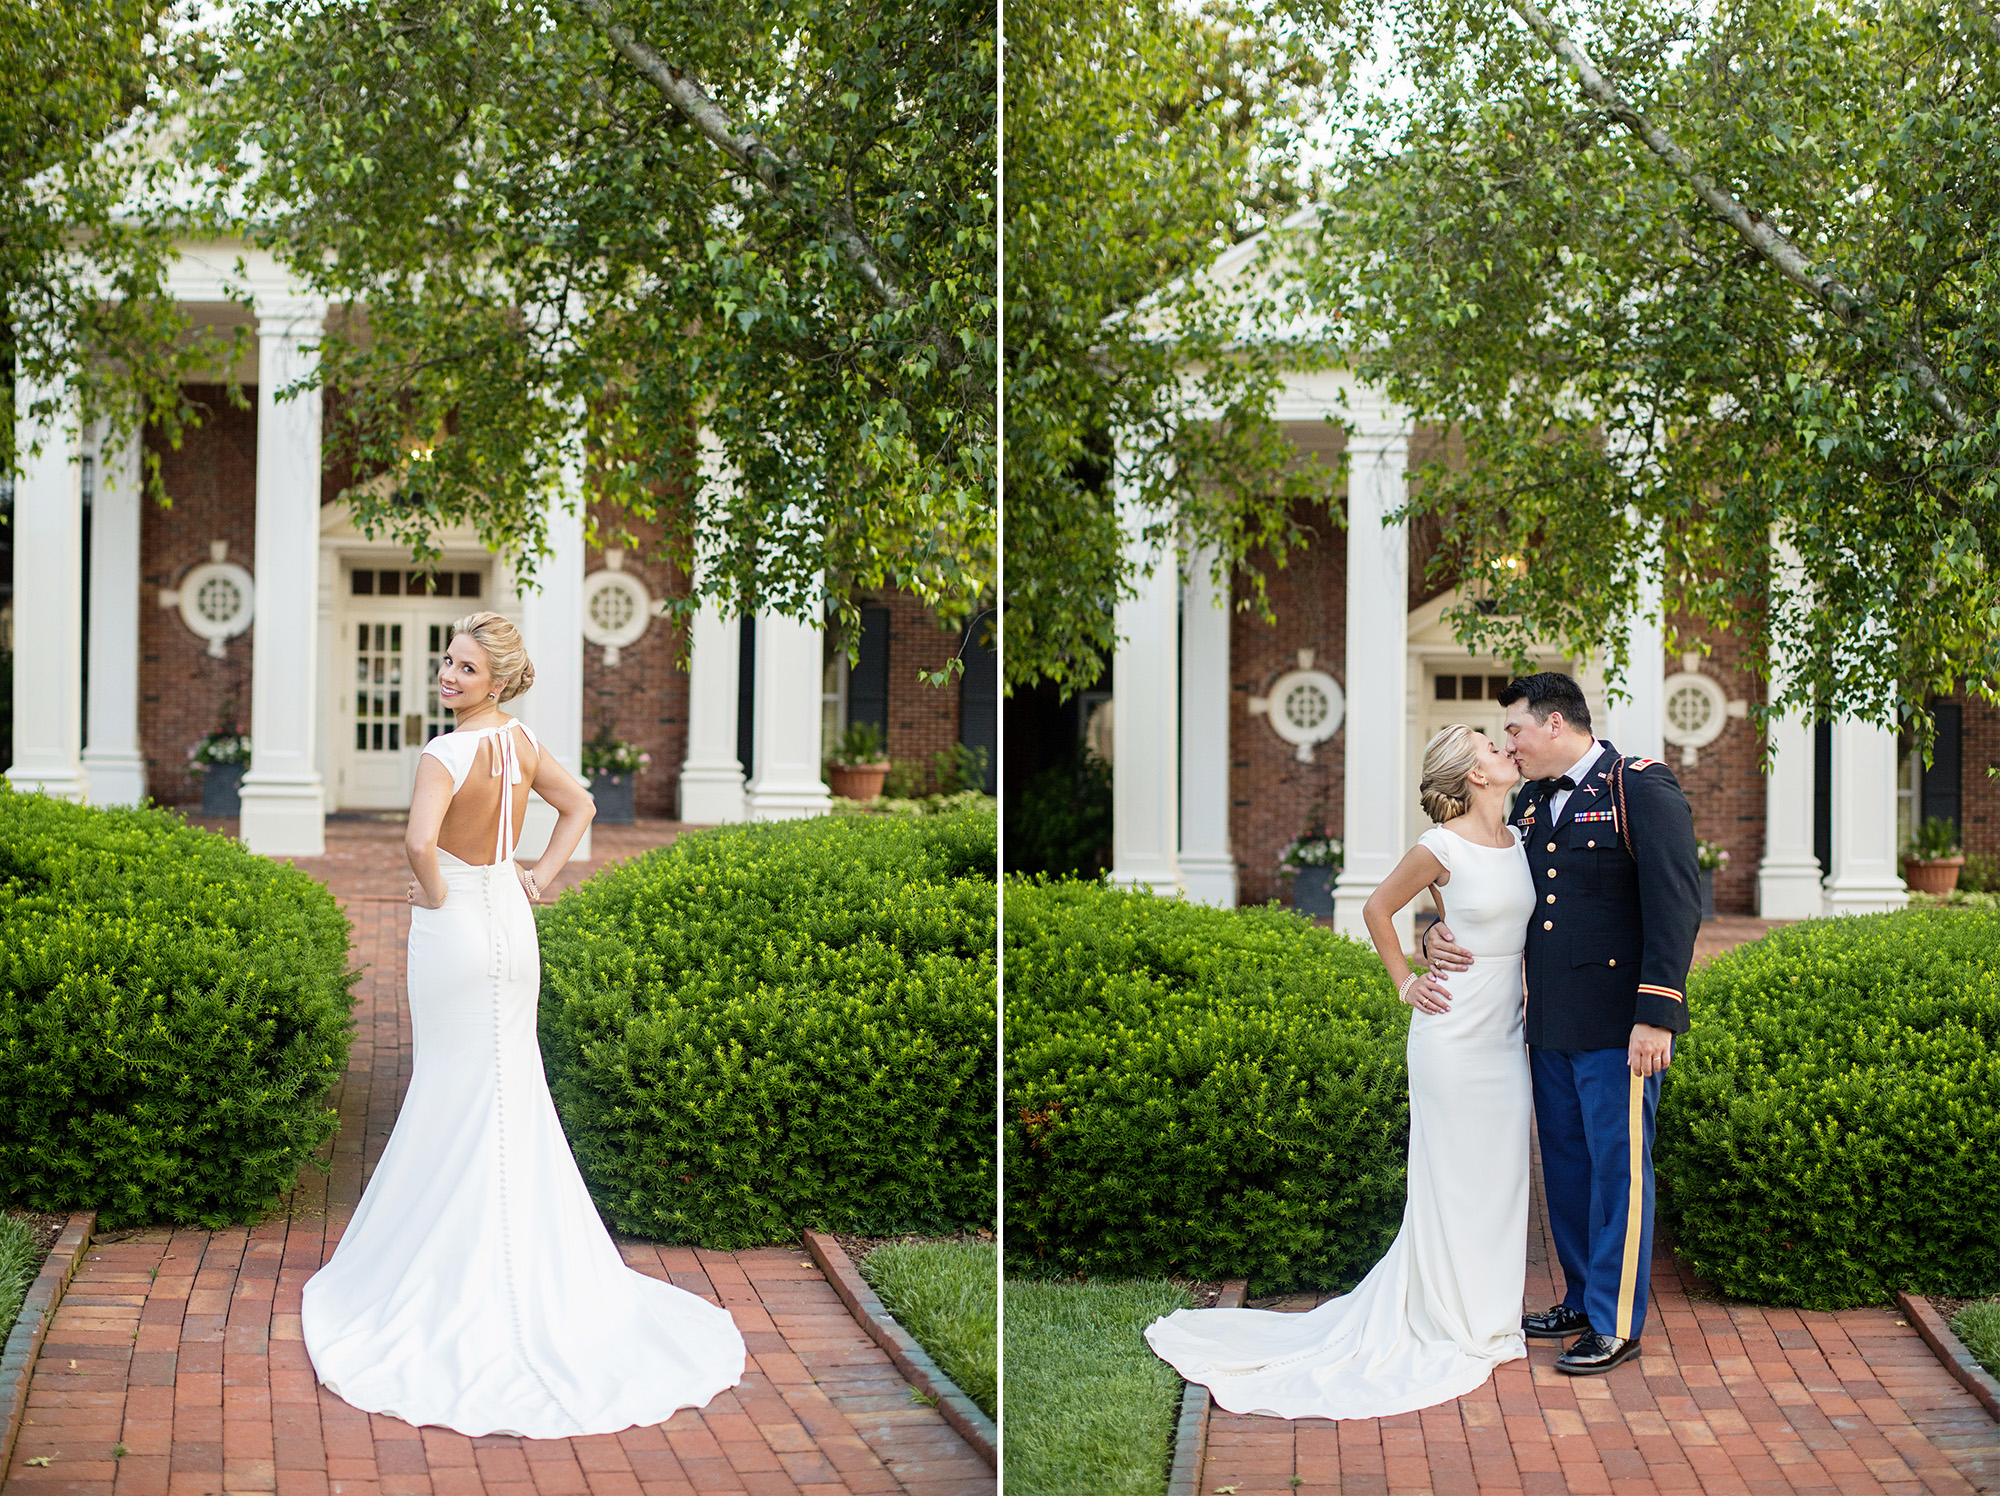 Seriously_Sabrina_Photography_Lexington_Kentucky_Second_Presbyterian_Church_Idle_Hour_Country_Club_Wedding_Kime_51.jpg